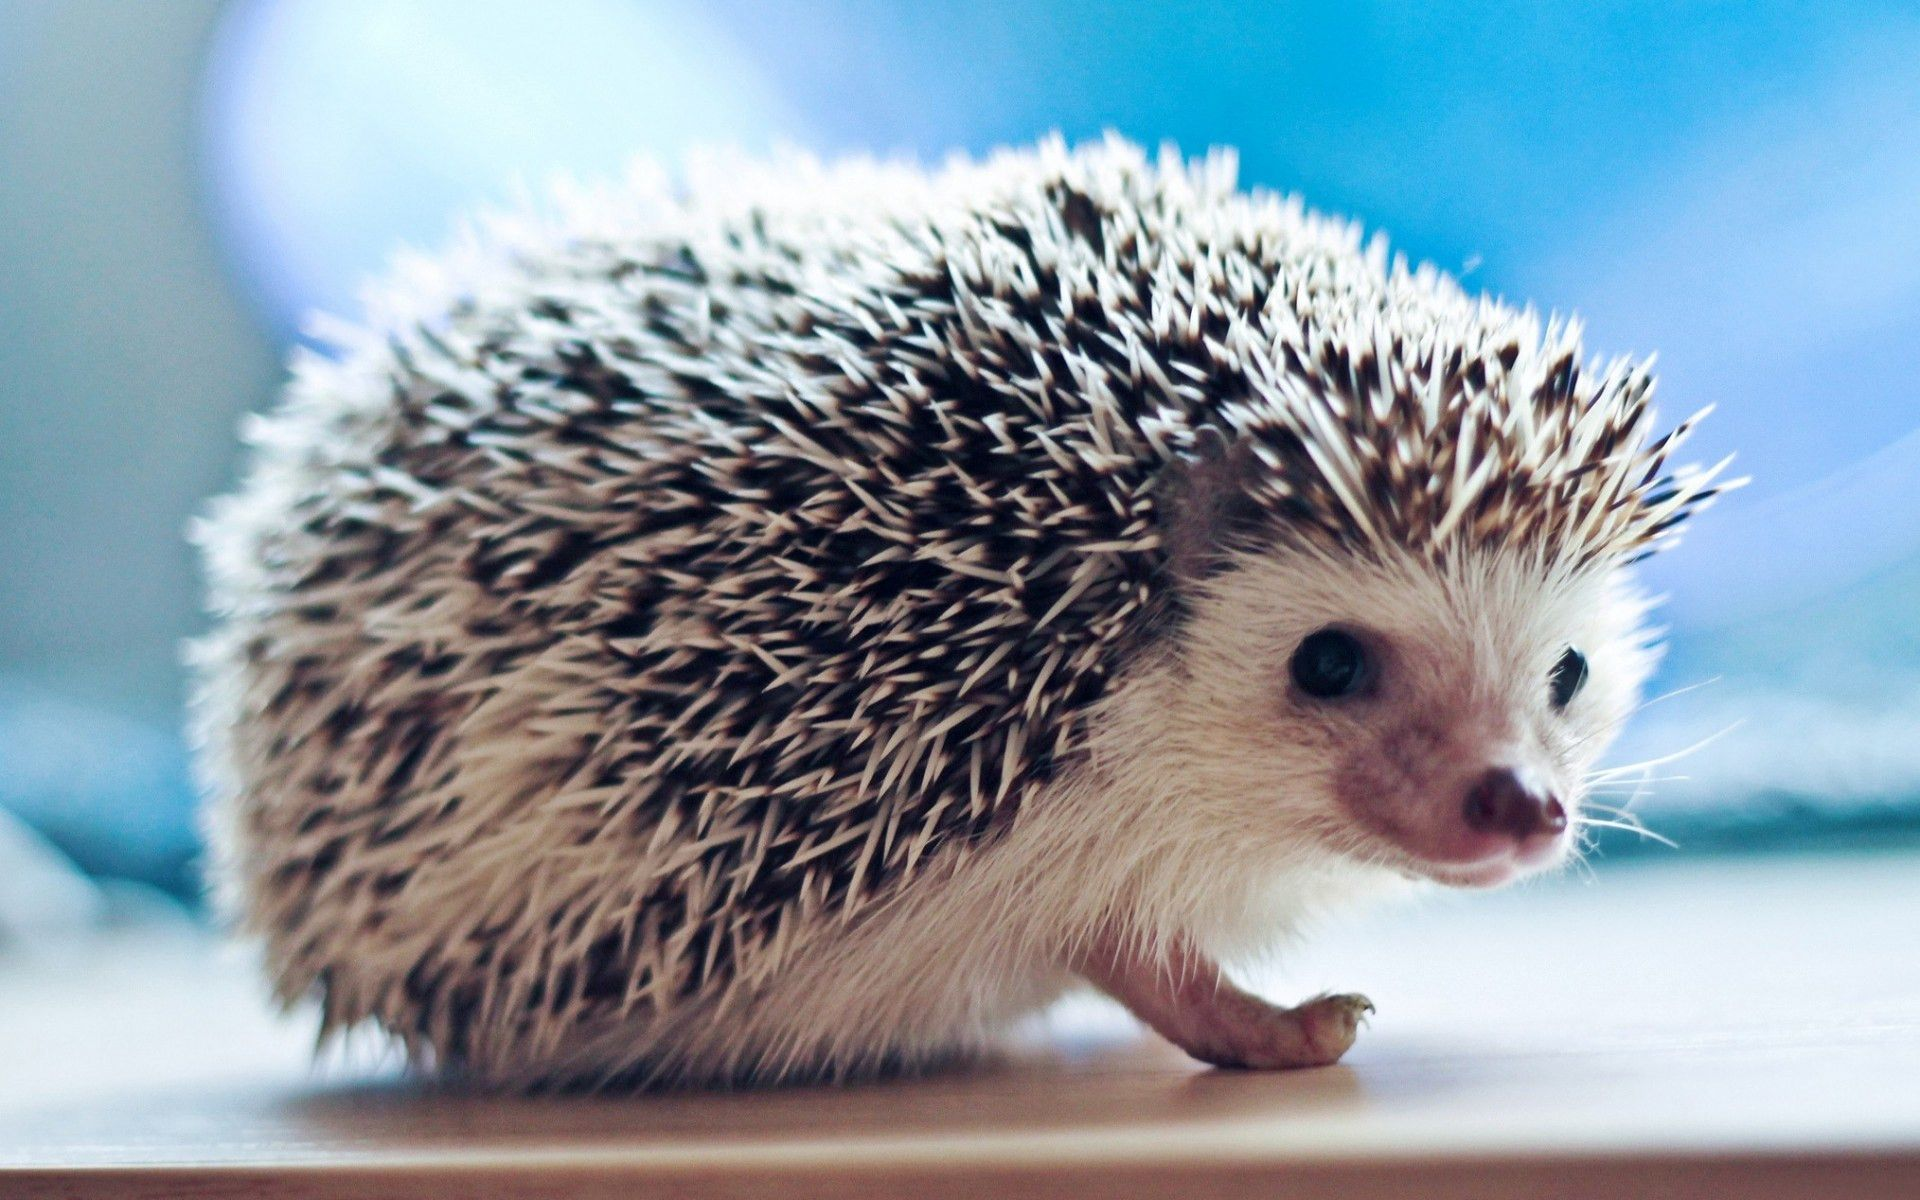 Hedgehog Wallpapers 39 Top Free Hedgehog Images For Desktop Cutest Animals On Earth Most Beautiful Animals Animals Beautiful